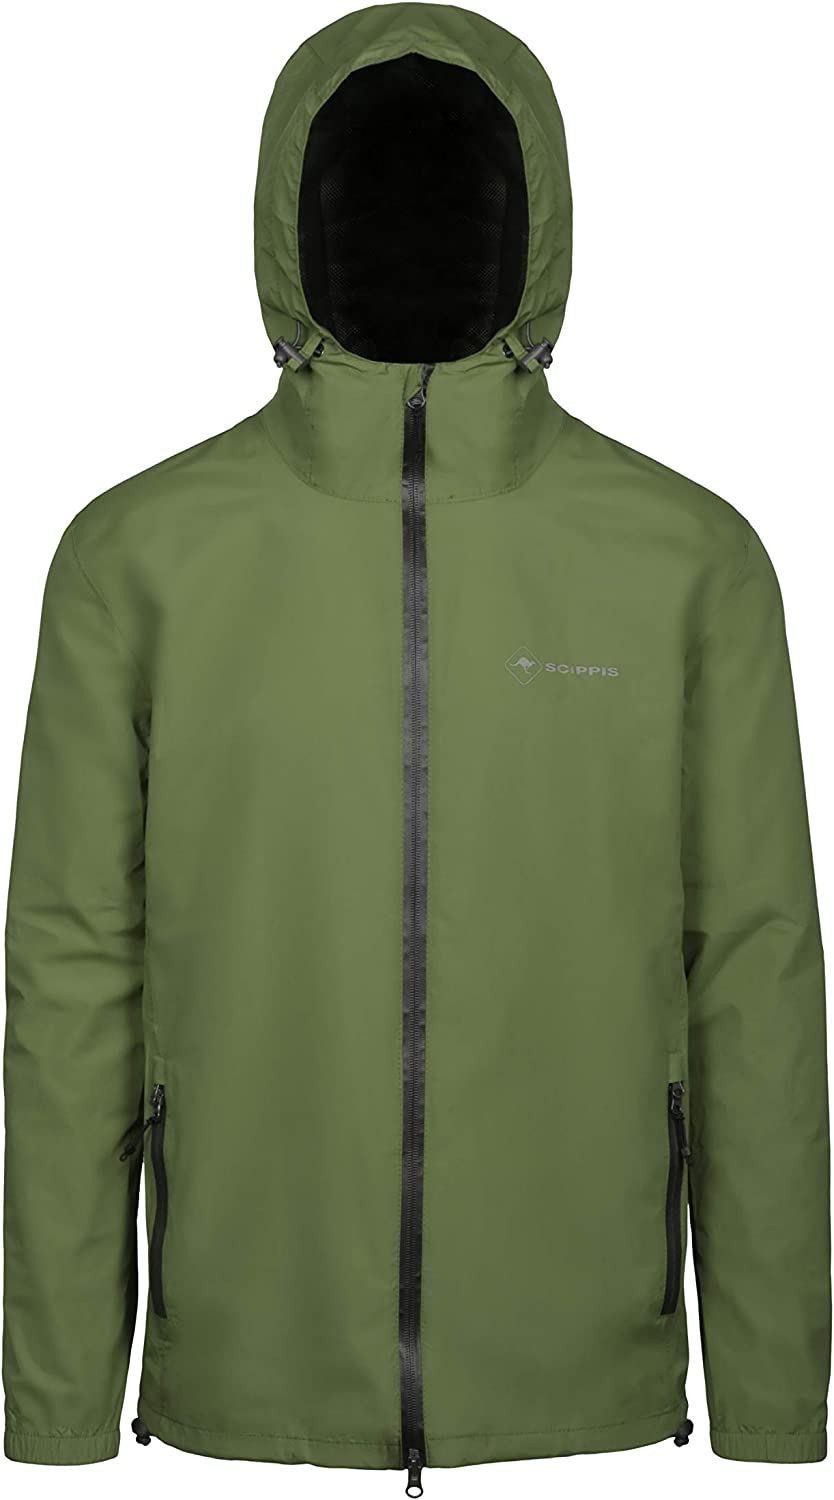 SCIPPIS Storm Force Jacket